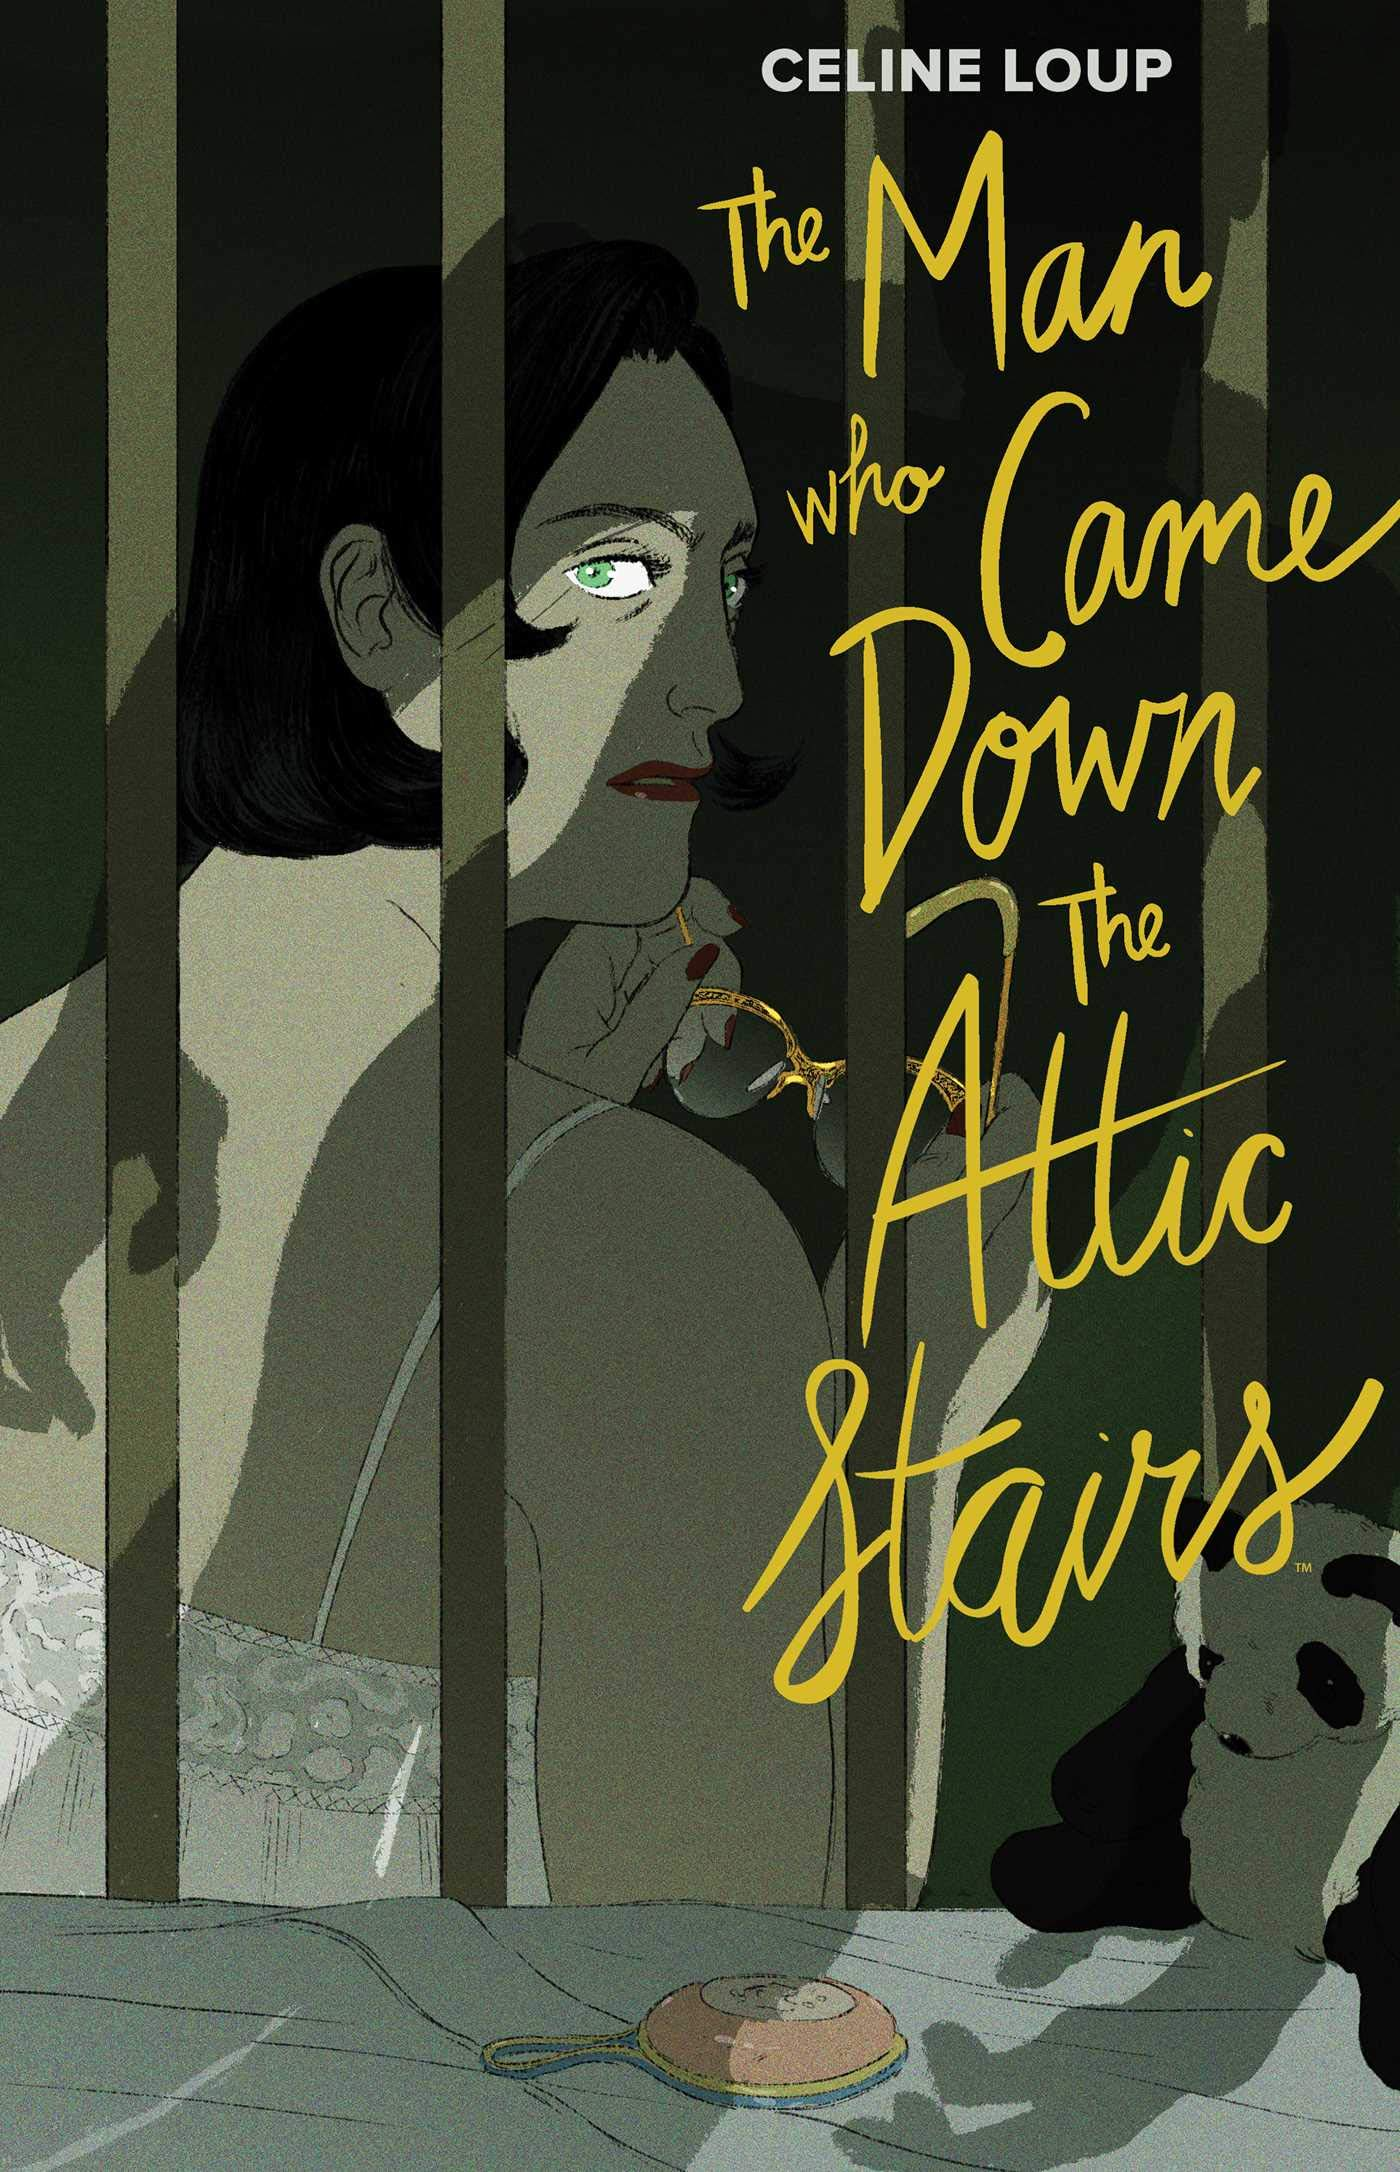 Best Comics of 2019: The Man Who Came Down the Attic Stairs